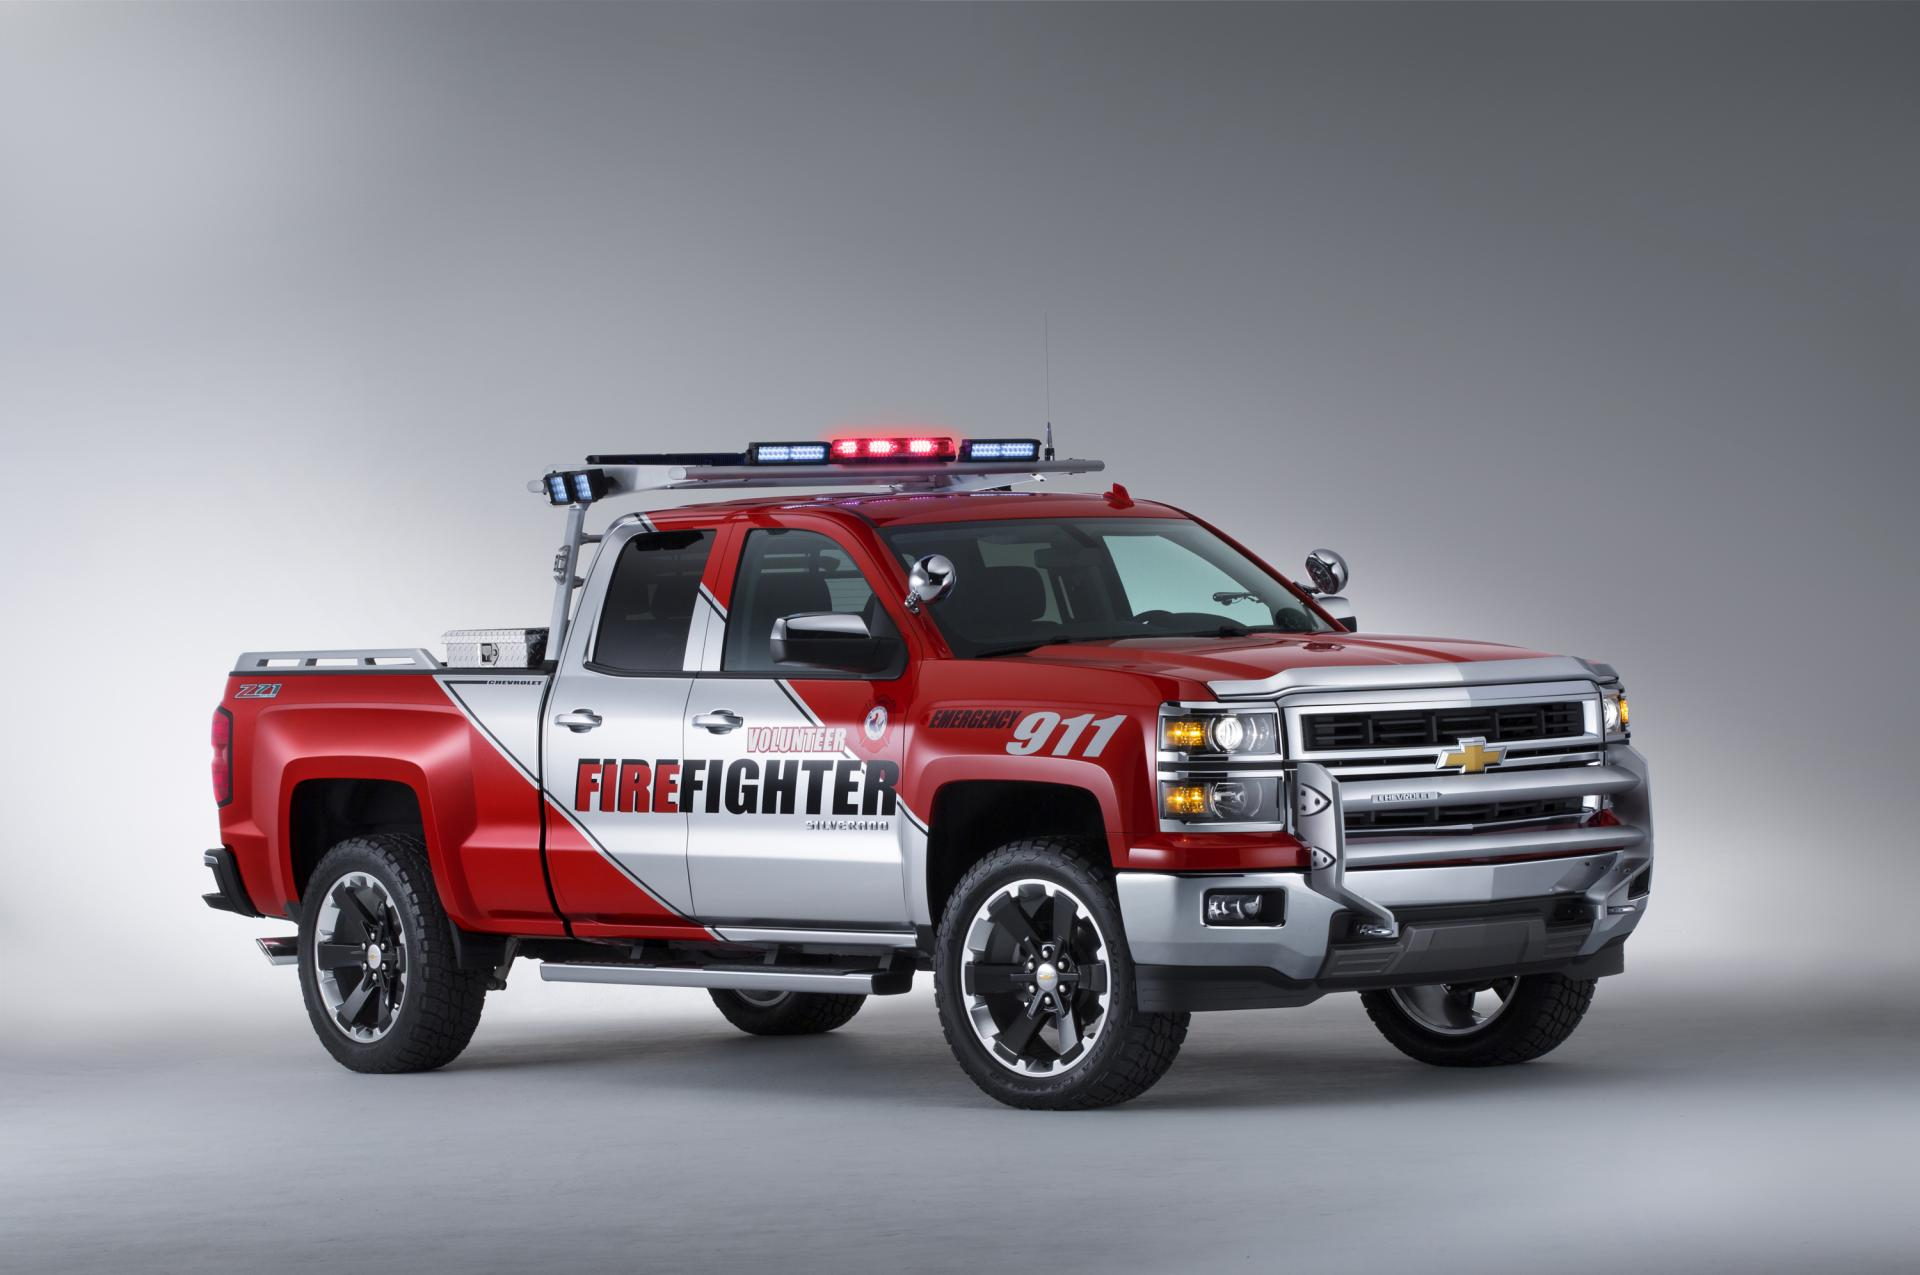 Ford Black Ops Price >> 2014 Chevrolet Silverado Volunteer Firefighter Concept News and Information, Research, and ...